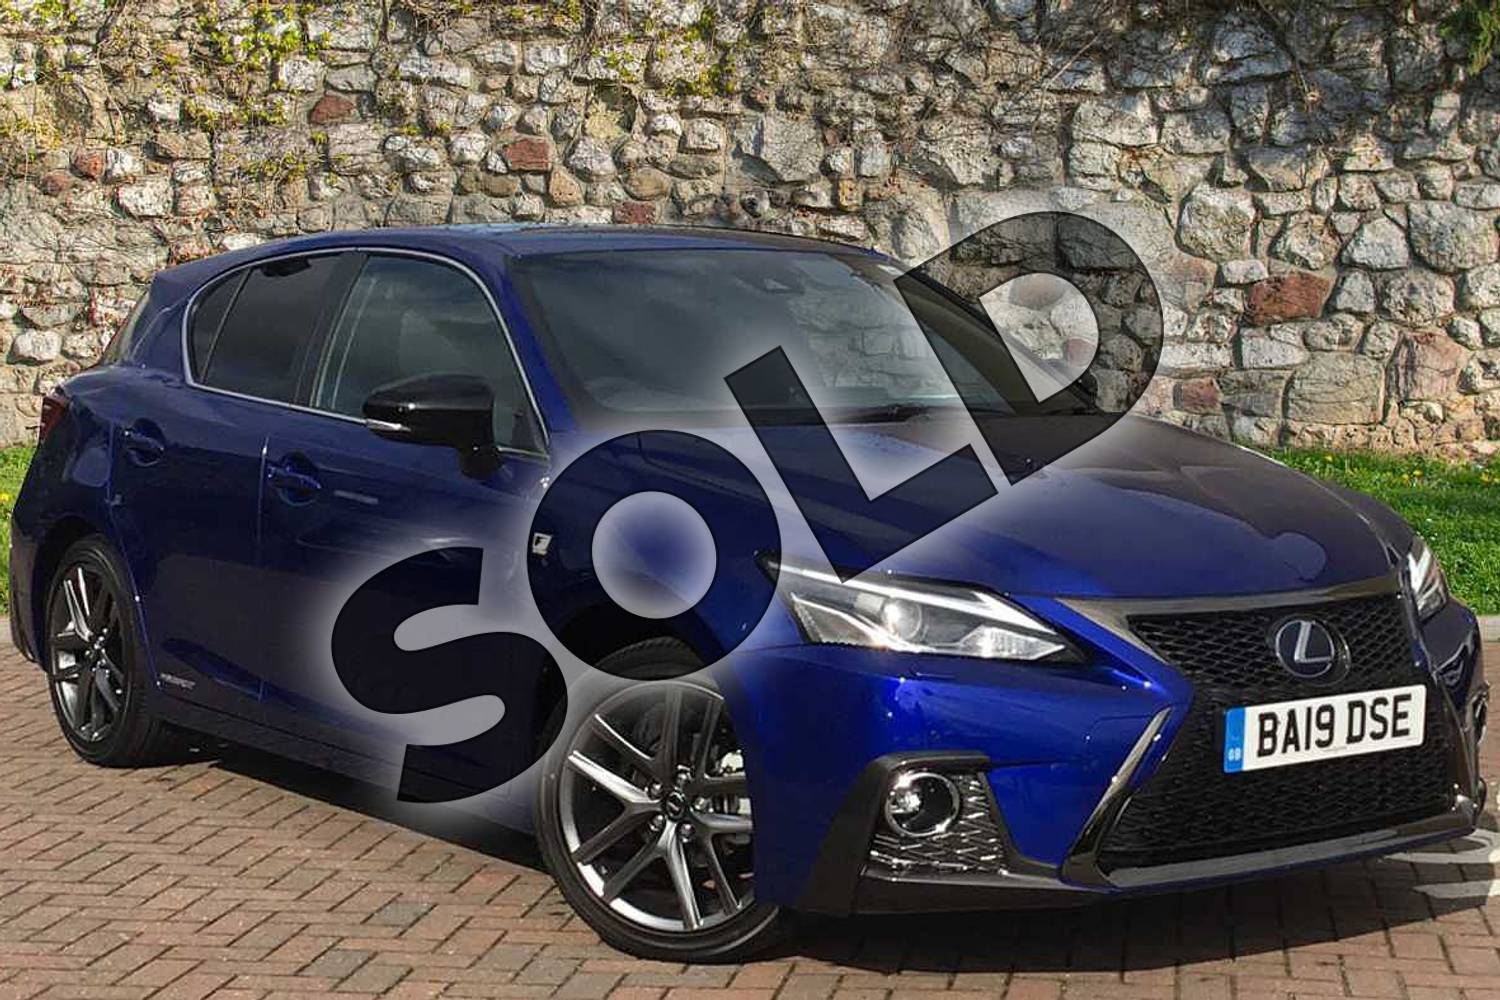 2019 Lexus CT Hatchback 200h 1.8 F-Sport 5dr CVT in Azure Blue at Lexus Coventry